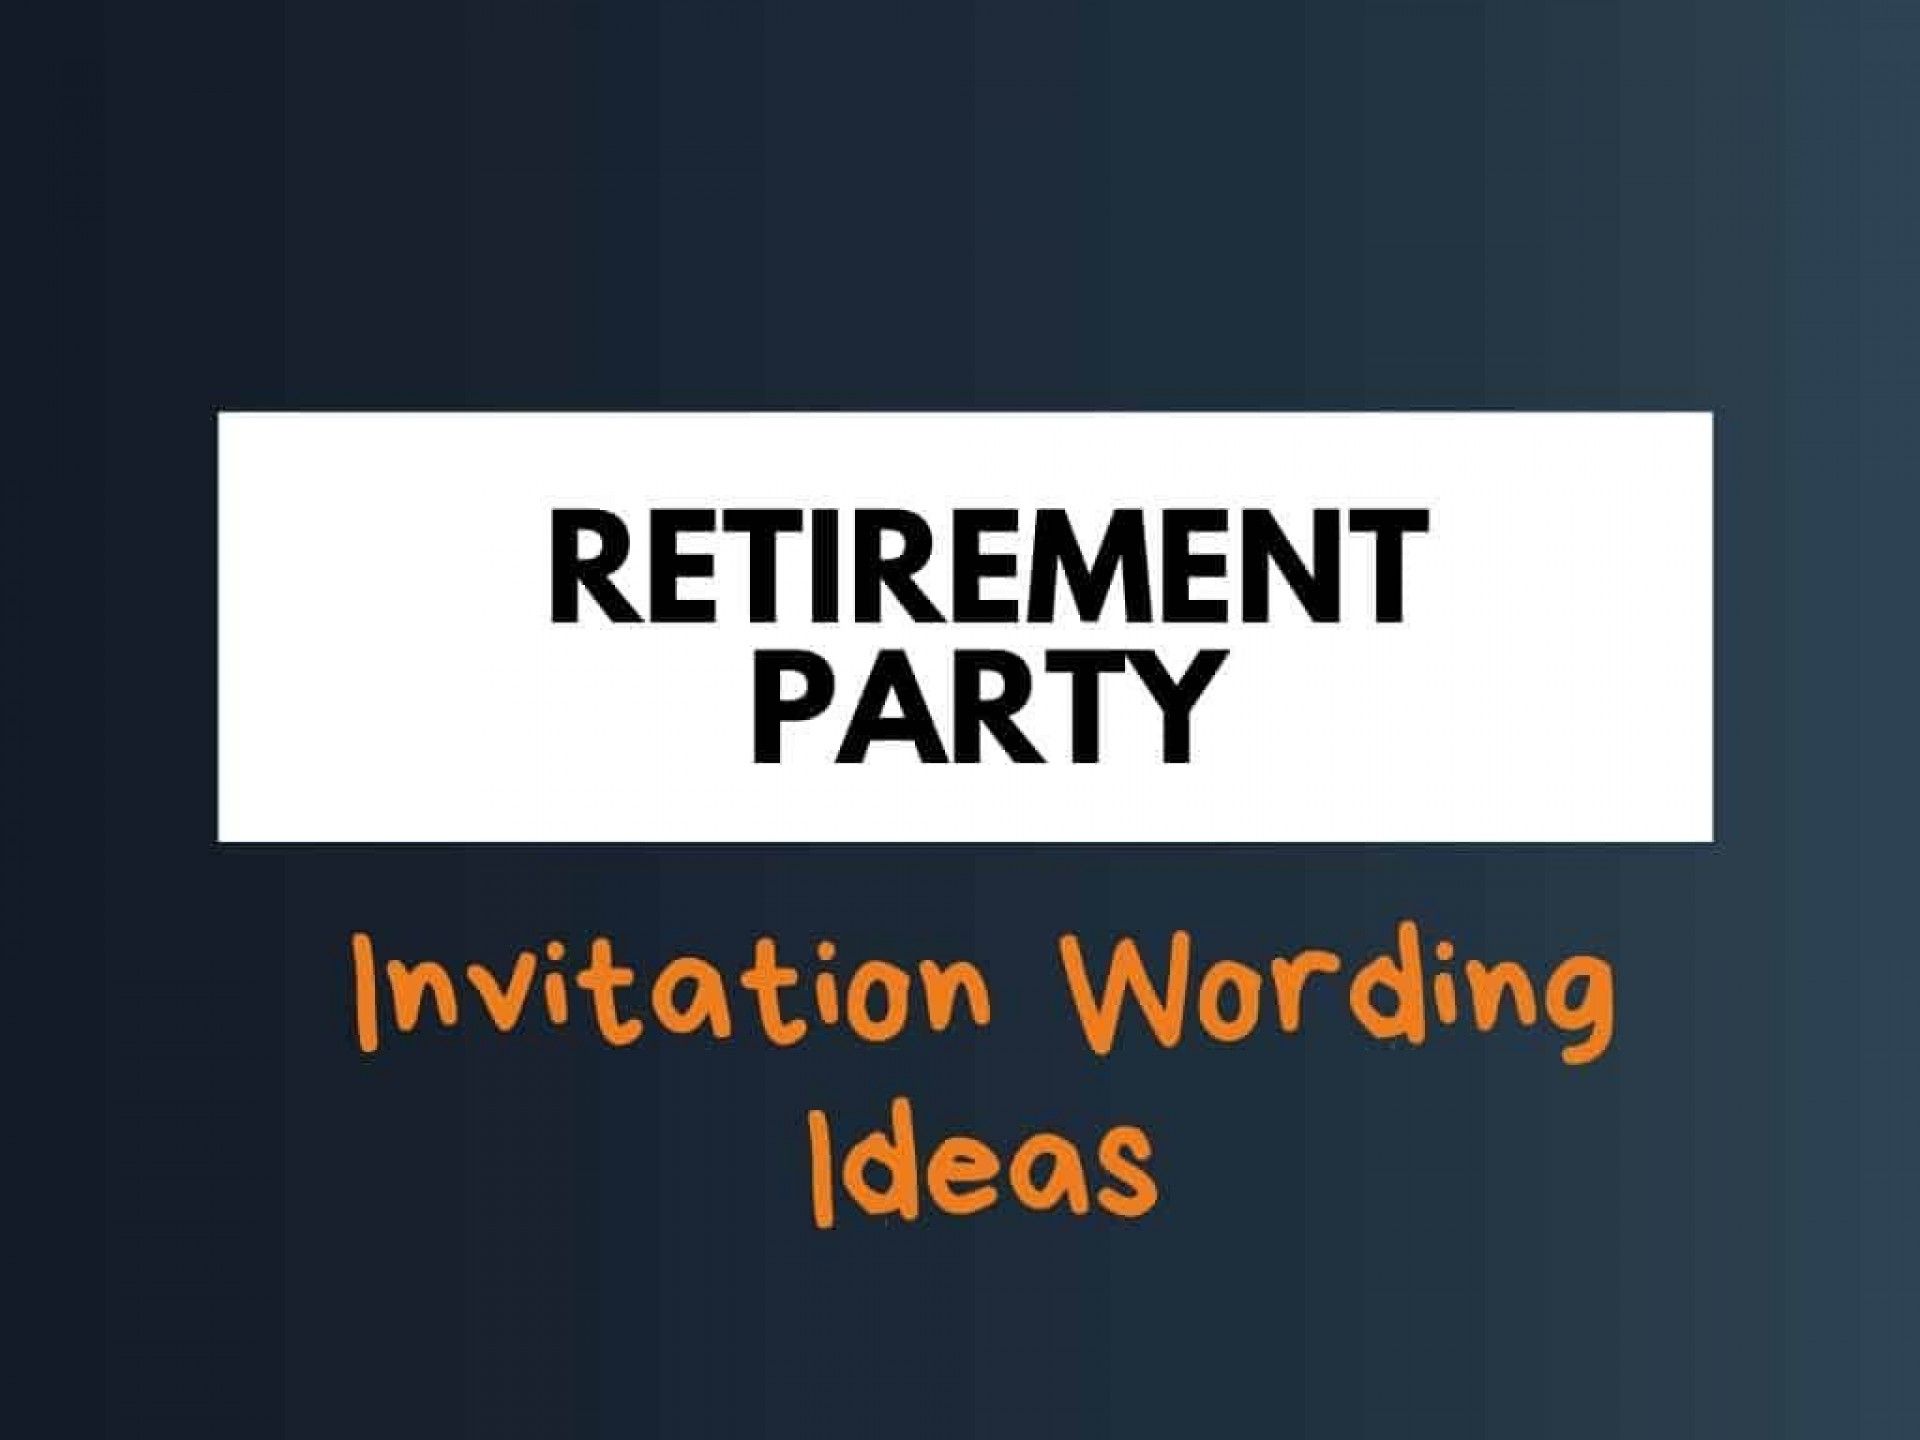 007 Wondrou Retirement Party Invitation Template High Def  Templates For Free Nurse M Word1920